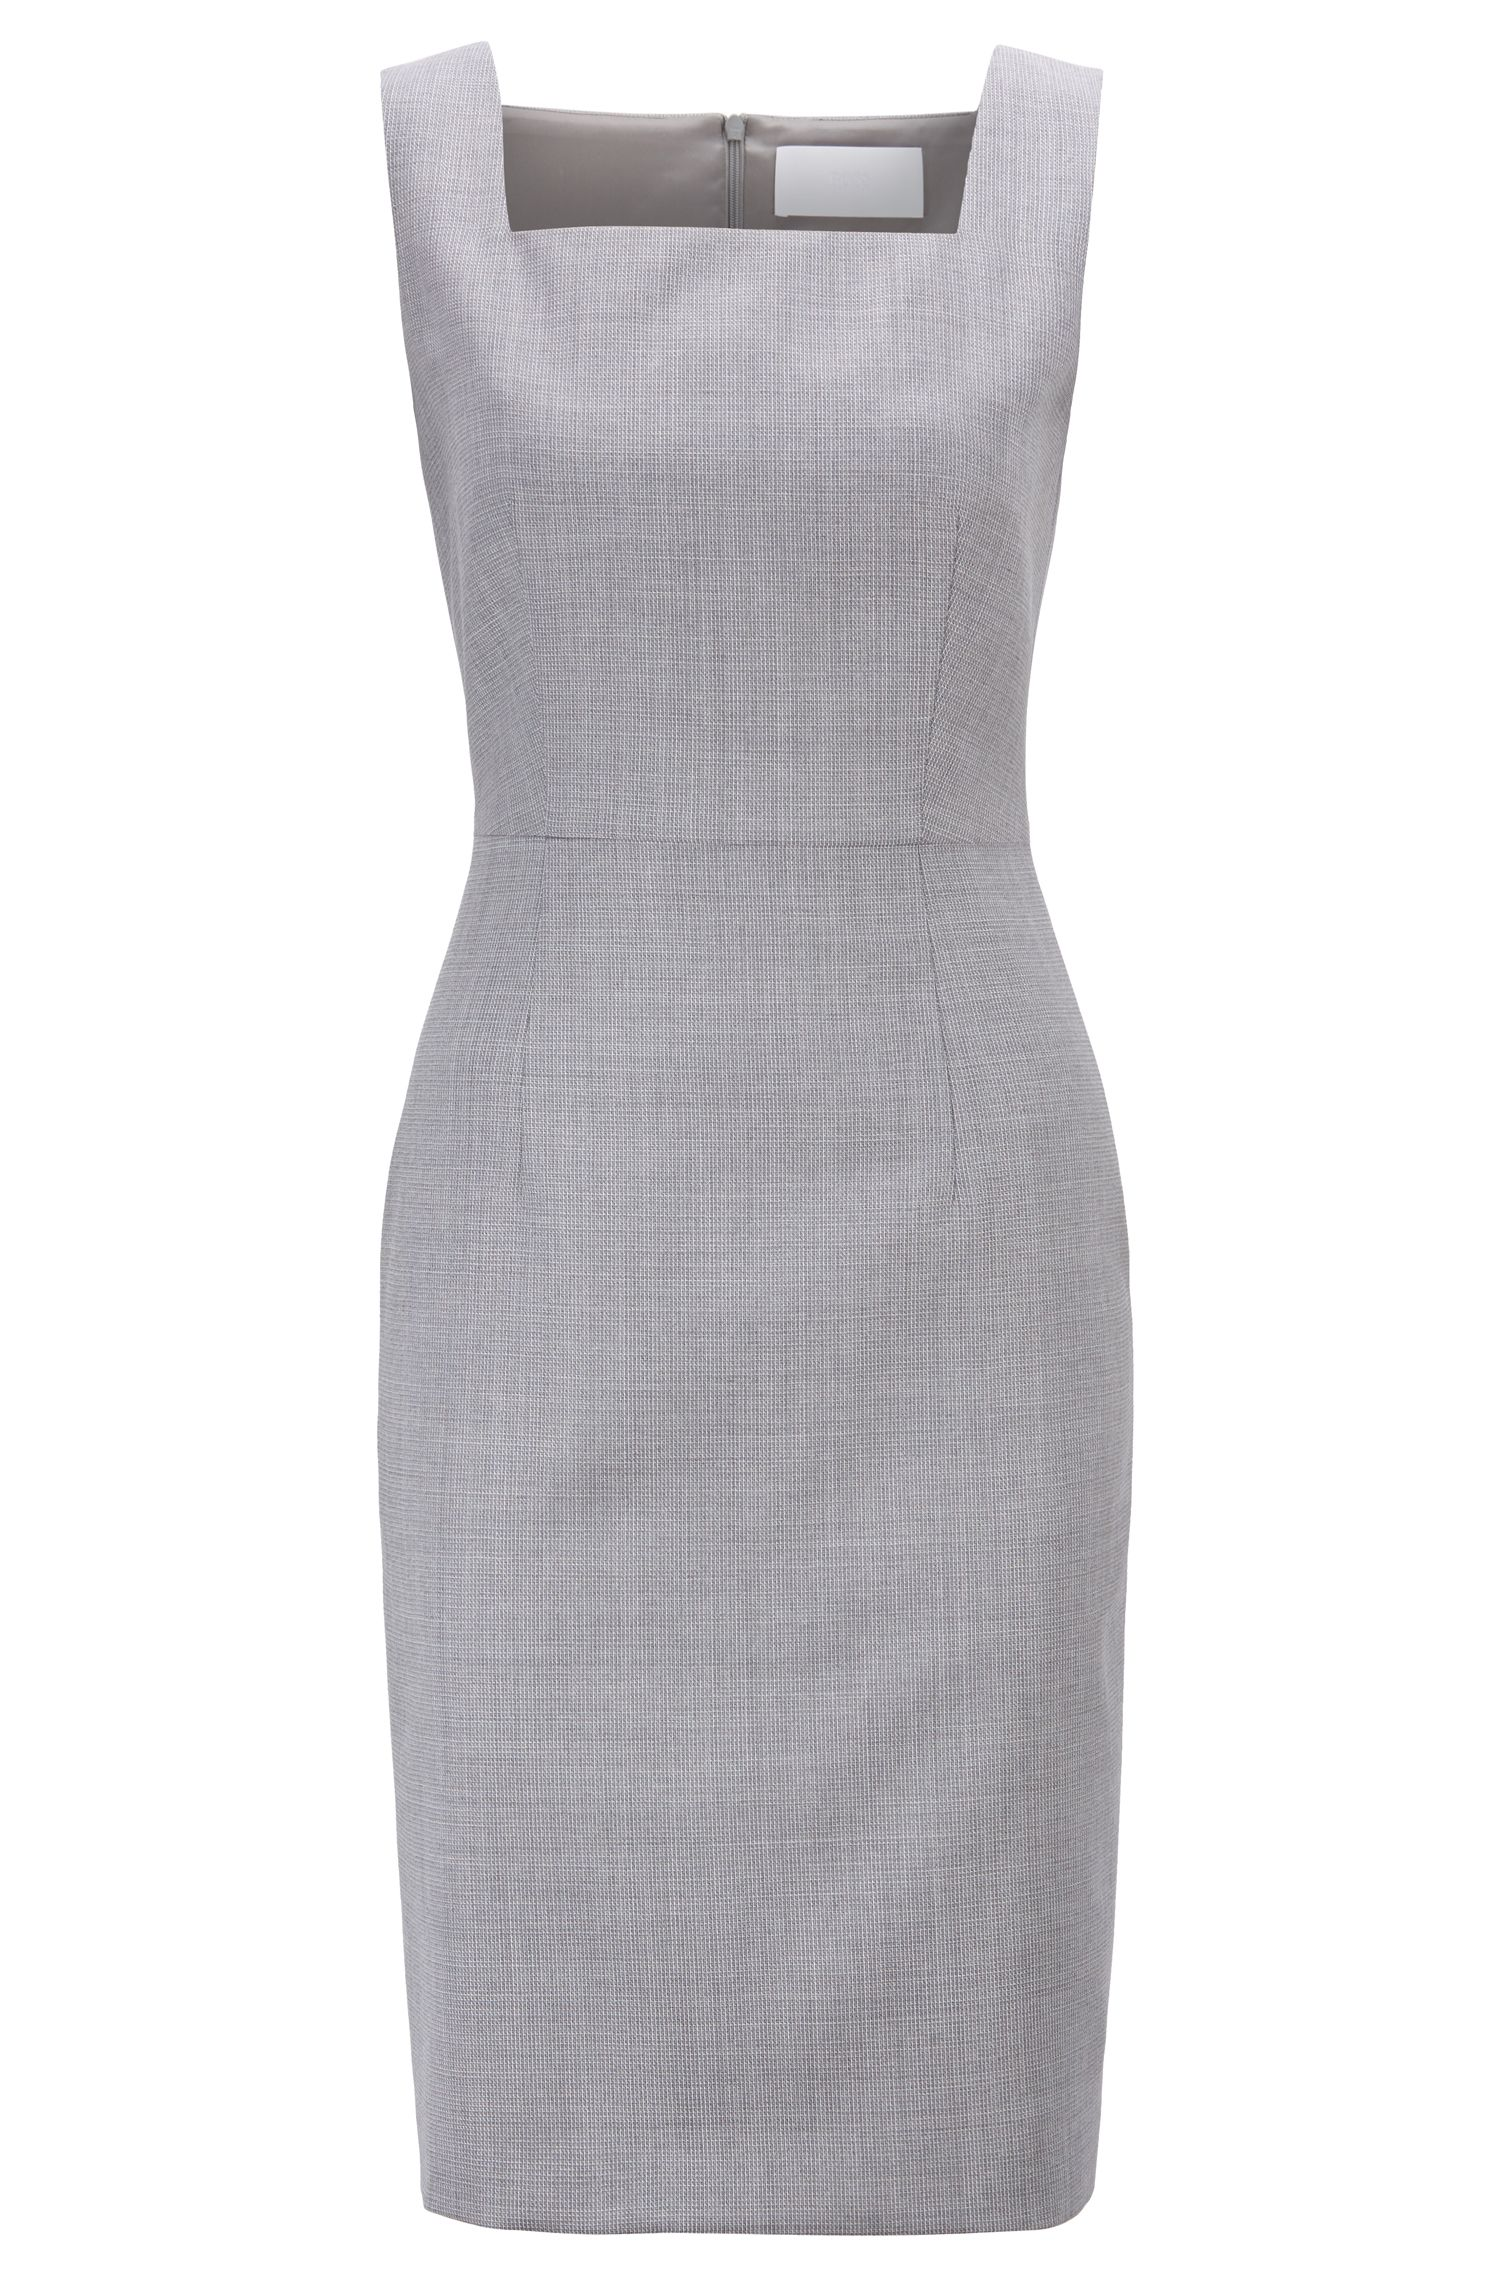 Regular-fit shift dress in Italian wool, Patterned